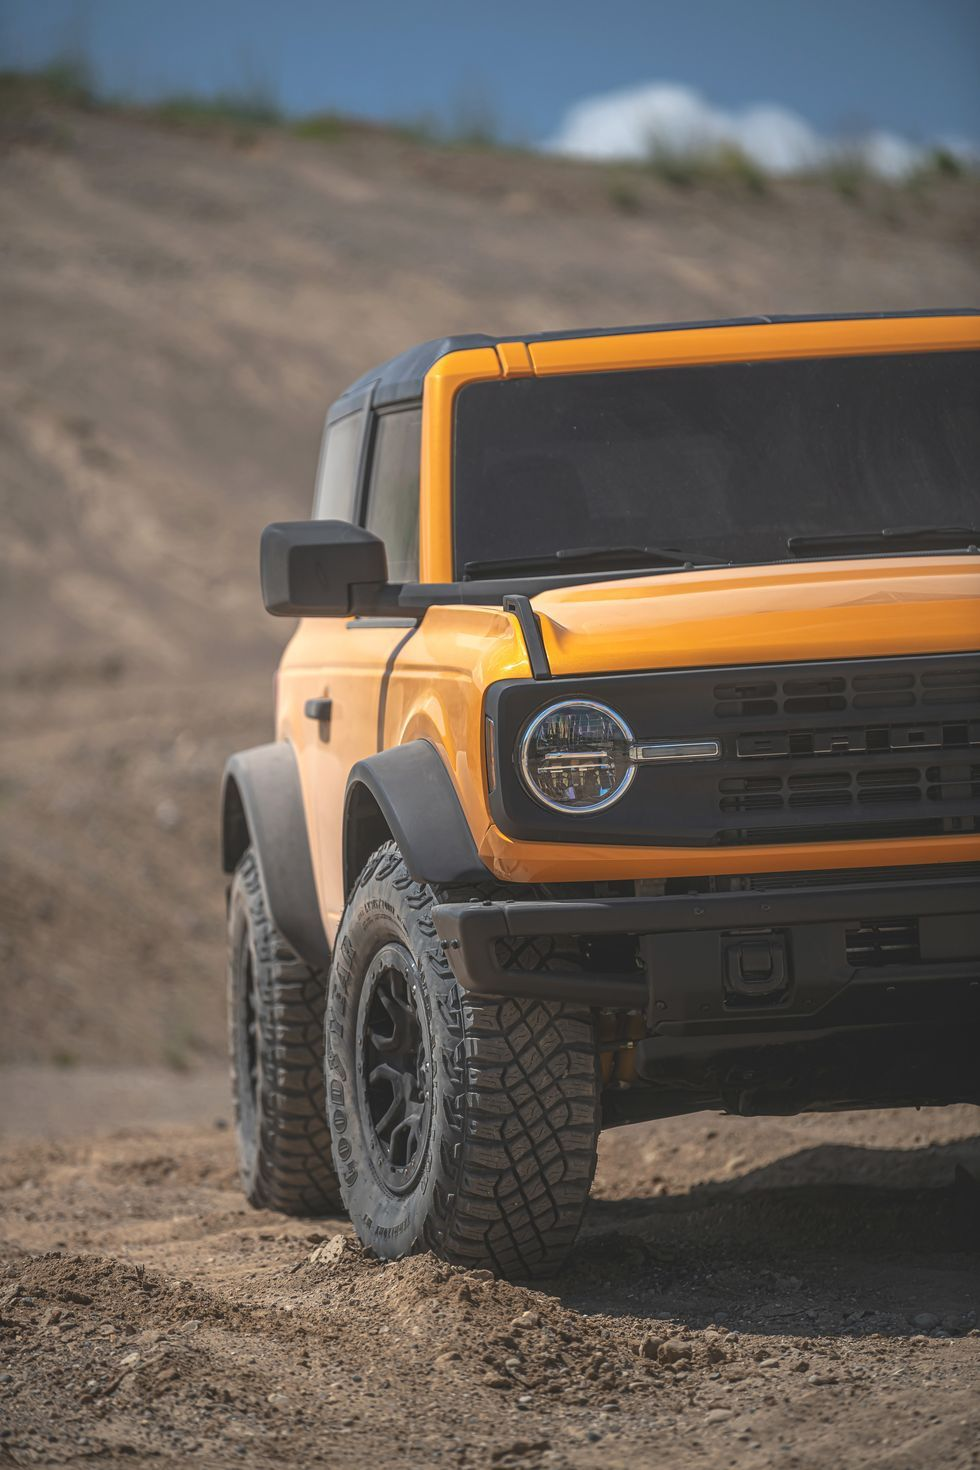 2021 Ford Bronco 2 Door In 2020 Ford Bronco Ford Bronco 2 Bronco